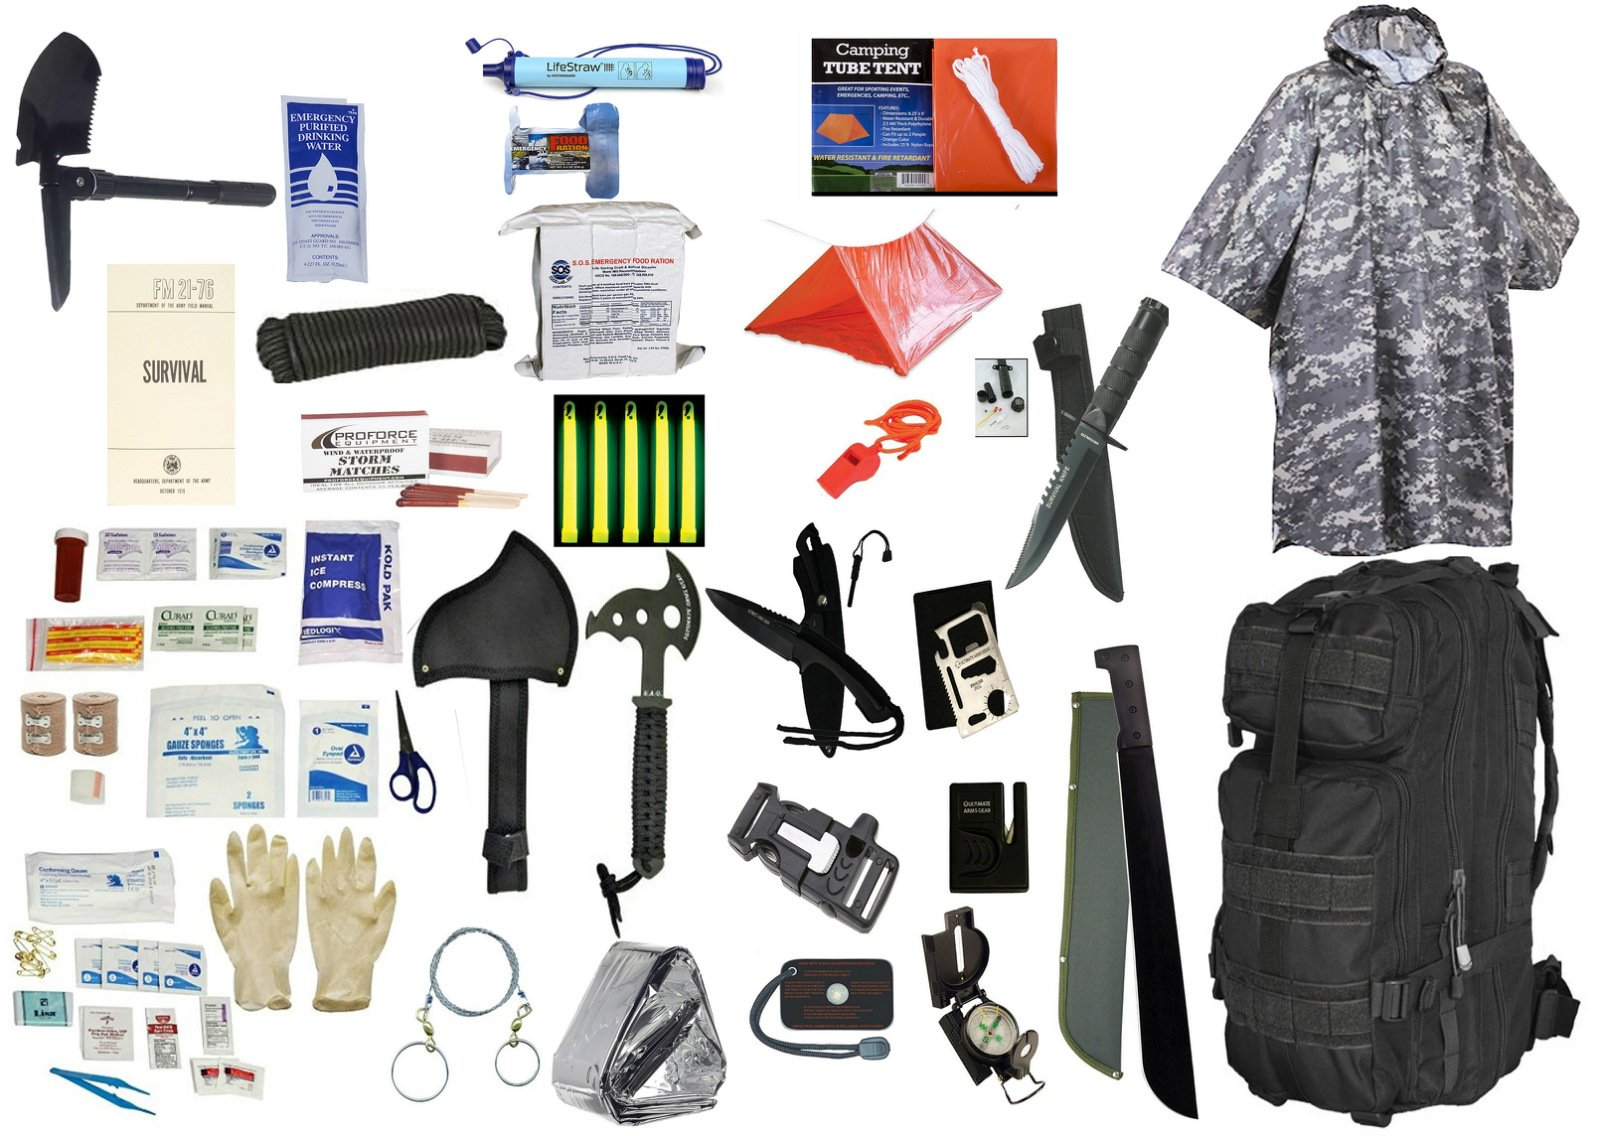 1 Person Supply 1 Day Emergency Bug Out S.O.S. Food Rations, Drinking Water, LifeStraw Personal Water Filter, First Aid Kit, Tent, Blanket, Backpack, ACU Poncho + Essential 21 Piece Survival Gear Set by Ultimate Arms Gear